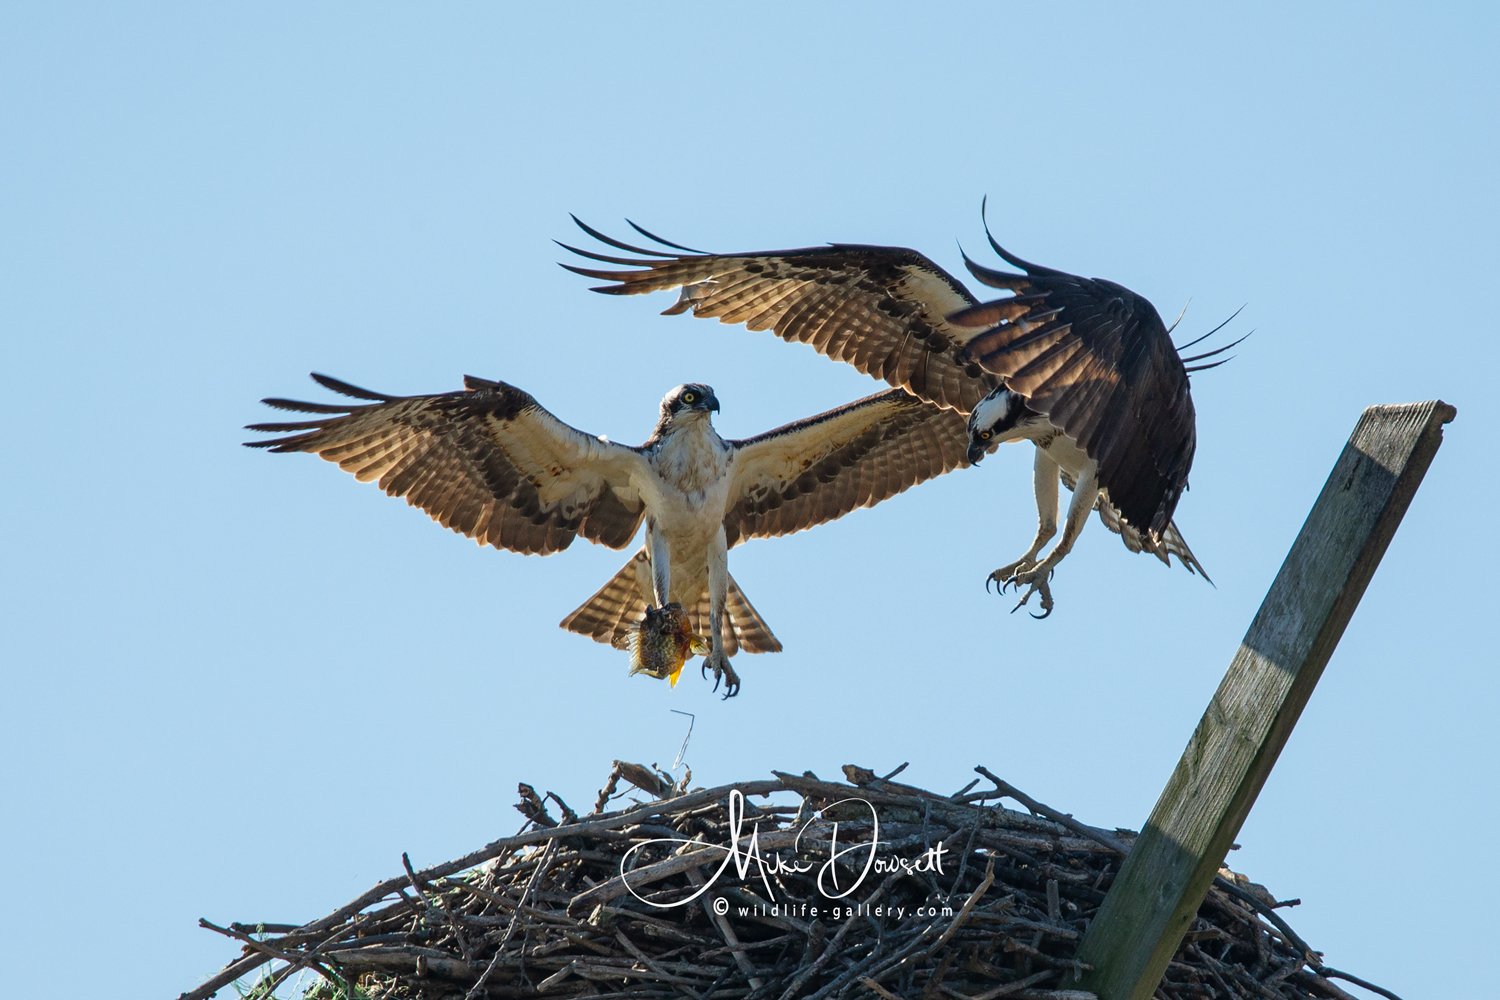 The male Osprey returns to the nest after catching a small fish from the Detroit River